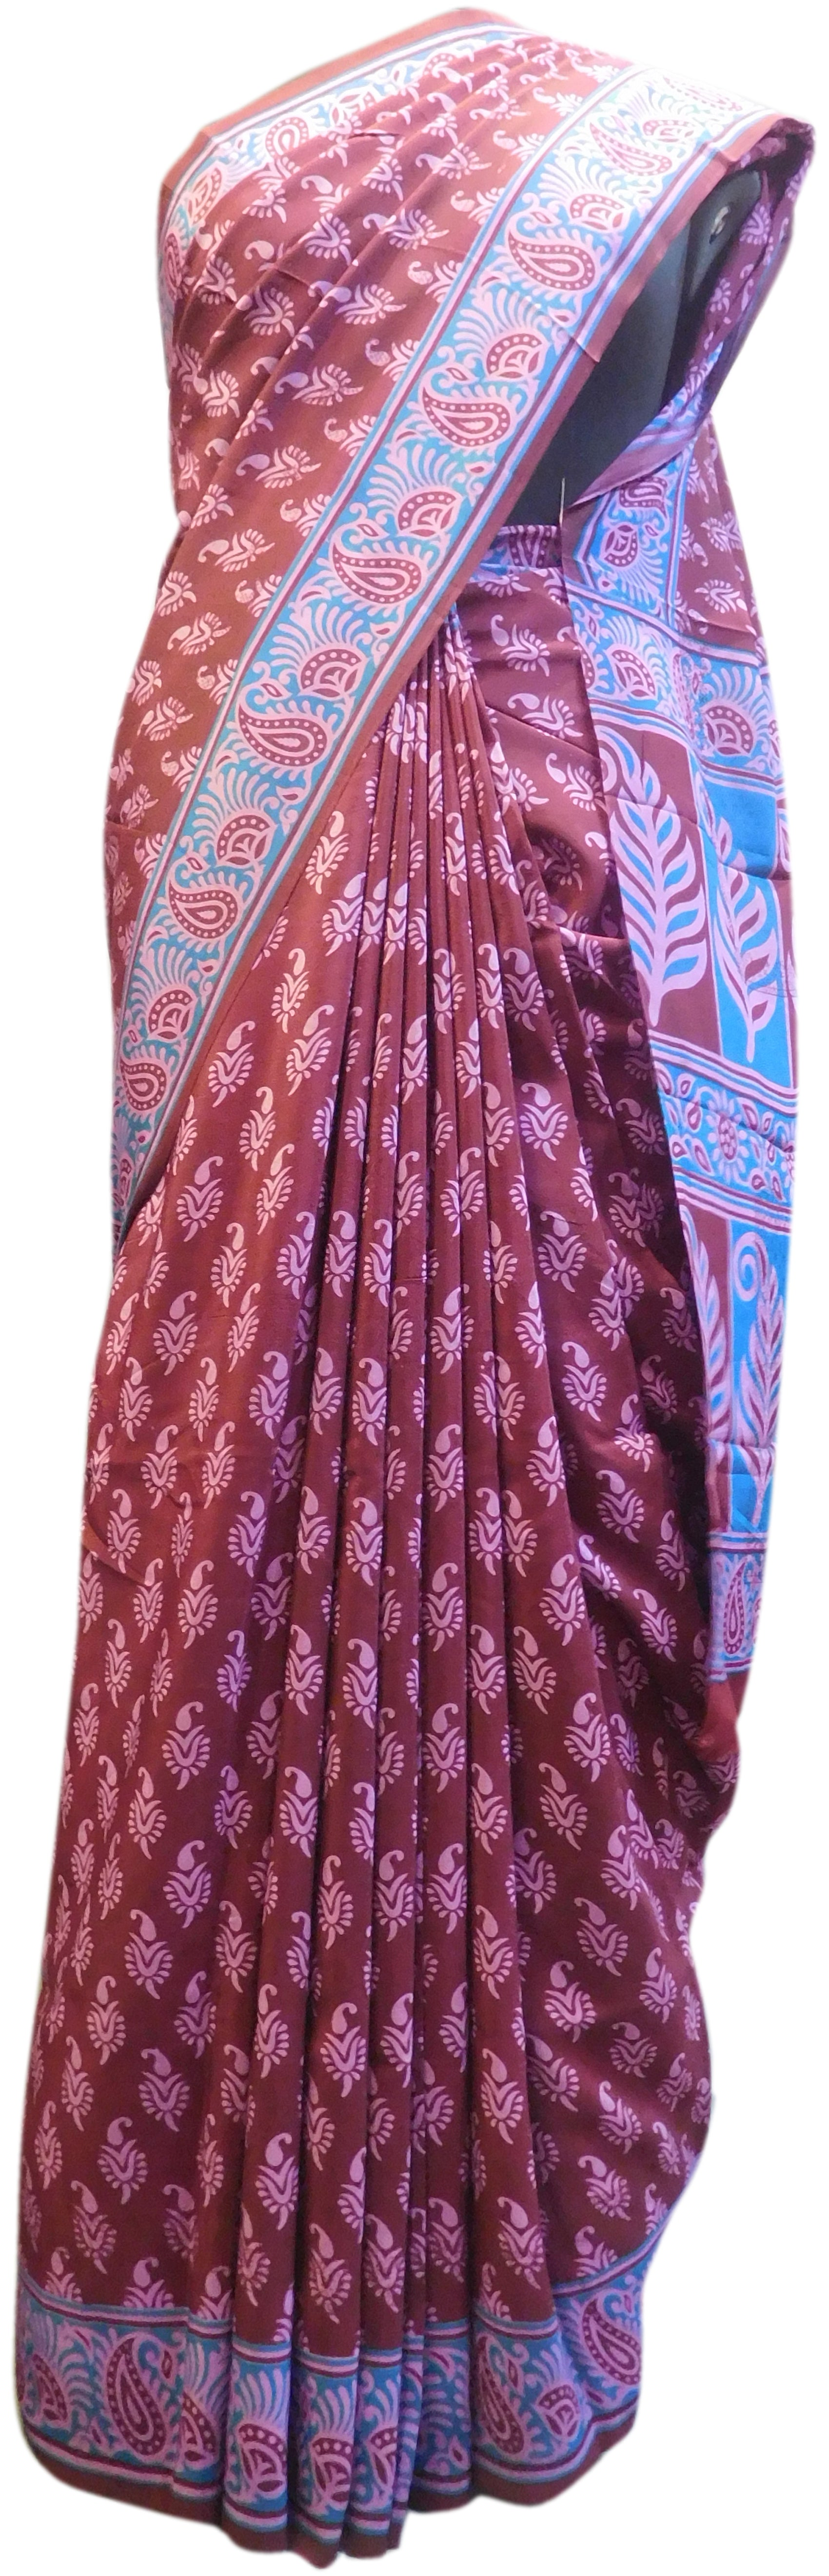 Multicolor Designer Wedding Partywear Pure Crepe Hand Brush Reprinted Kolkata Saree Sari RP150